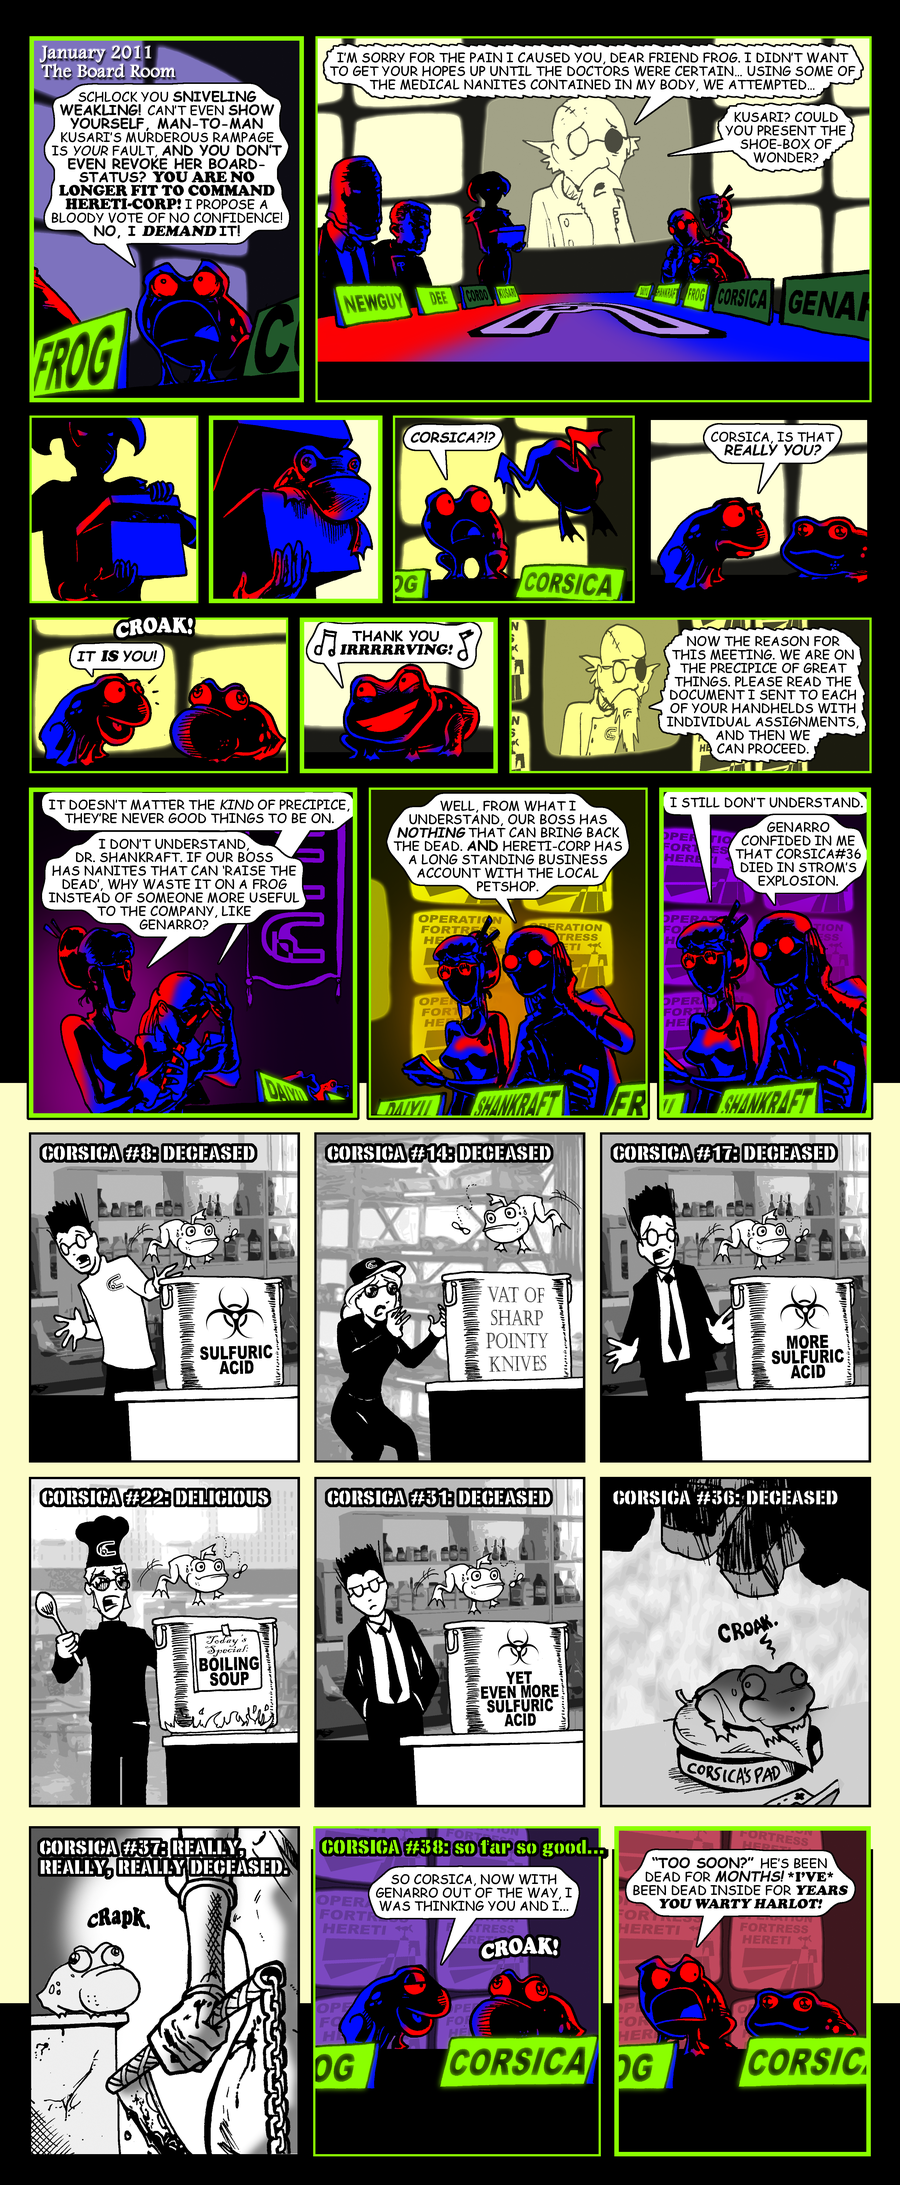 Comic for 02/10/2011